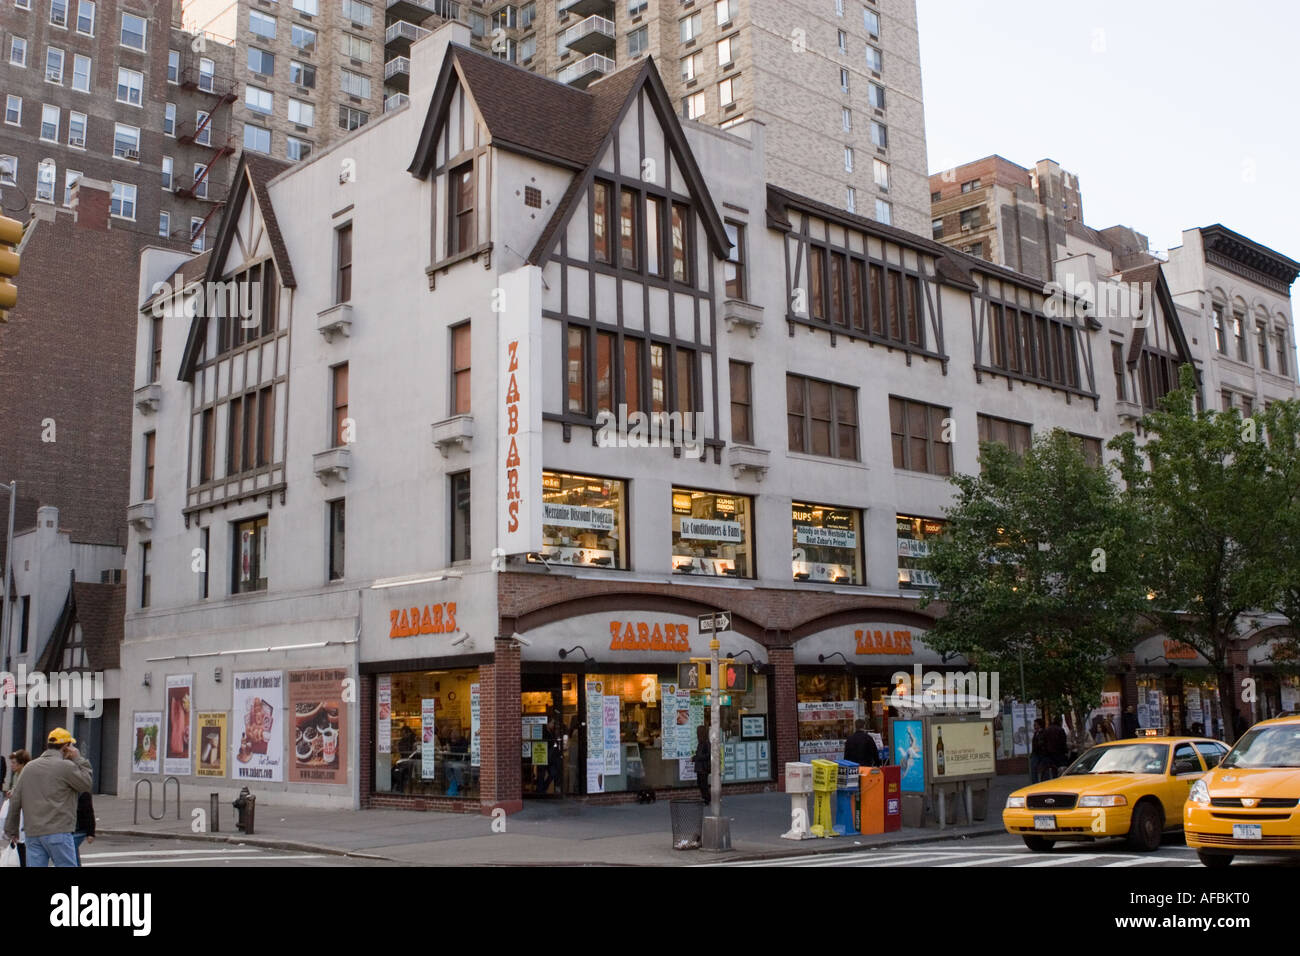 The popular Zabars food and appliance store Upper West Side New York City - Stock Image